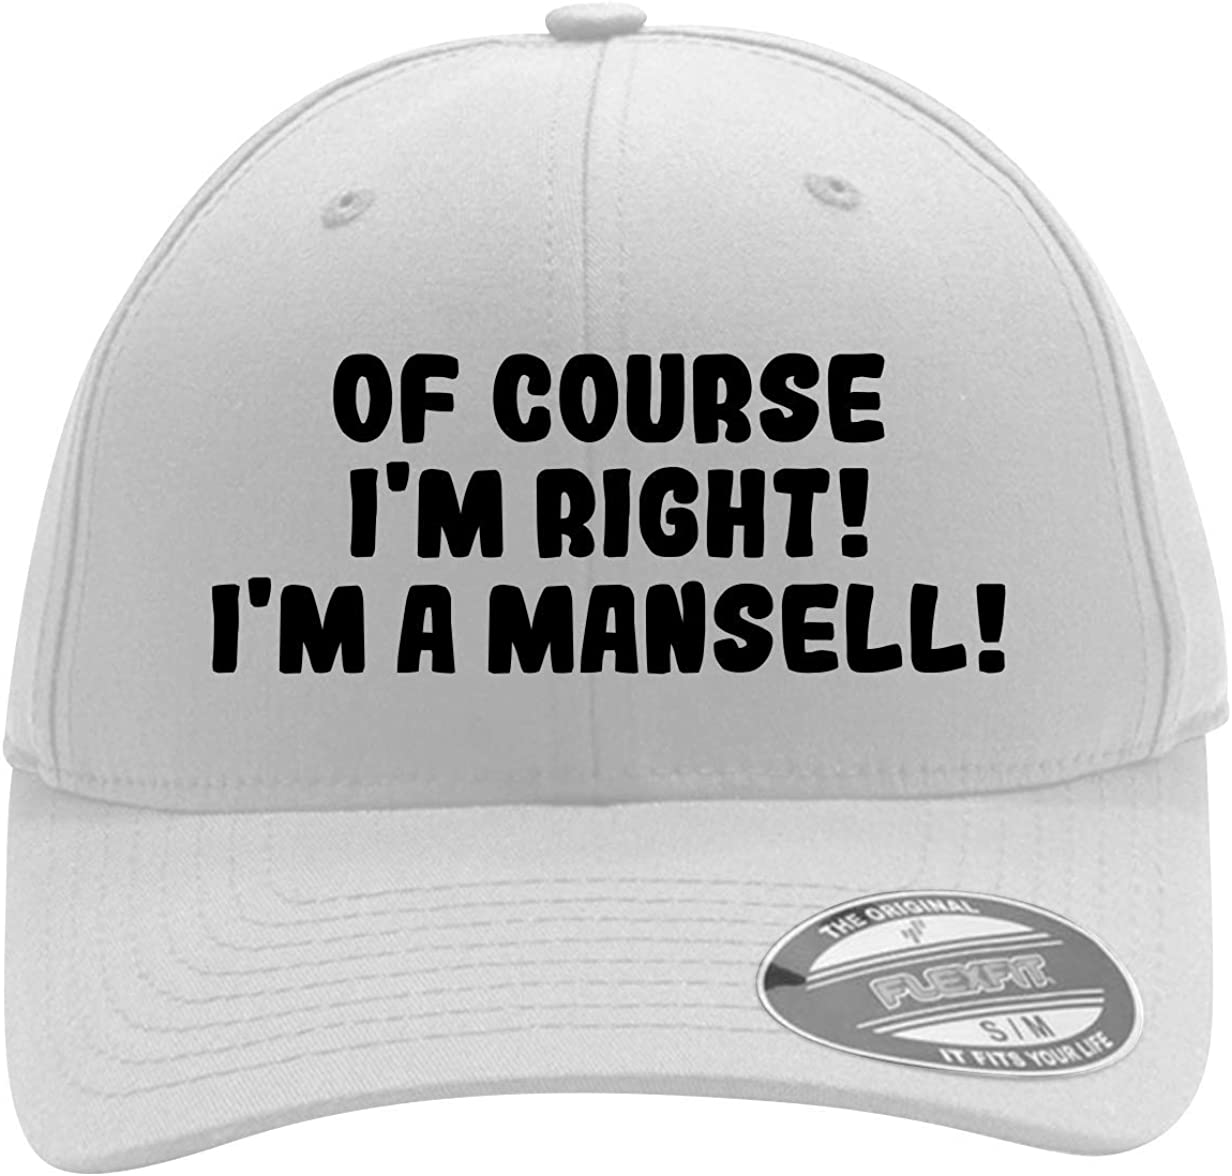 of Course I'm Right! I'm A Mansell! - Men's Flexfit Baseball Cap Hat 61DdGHV0F1L